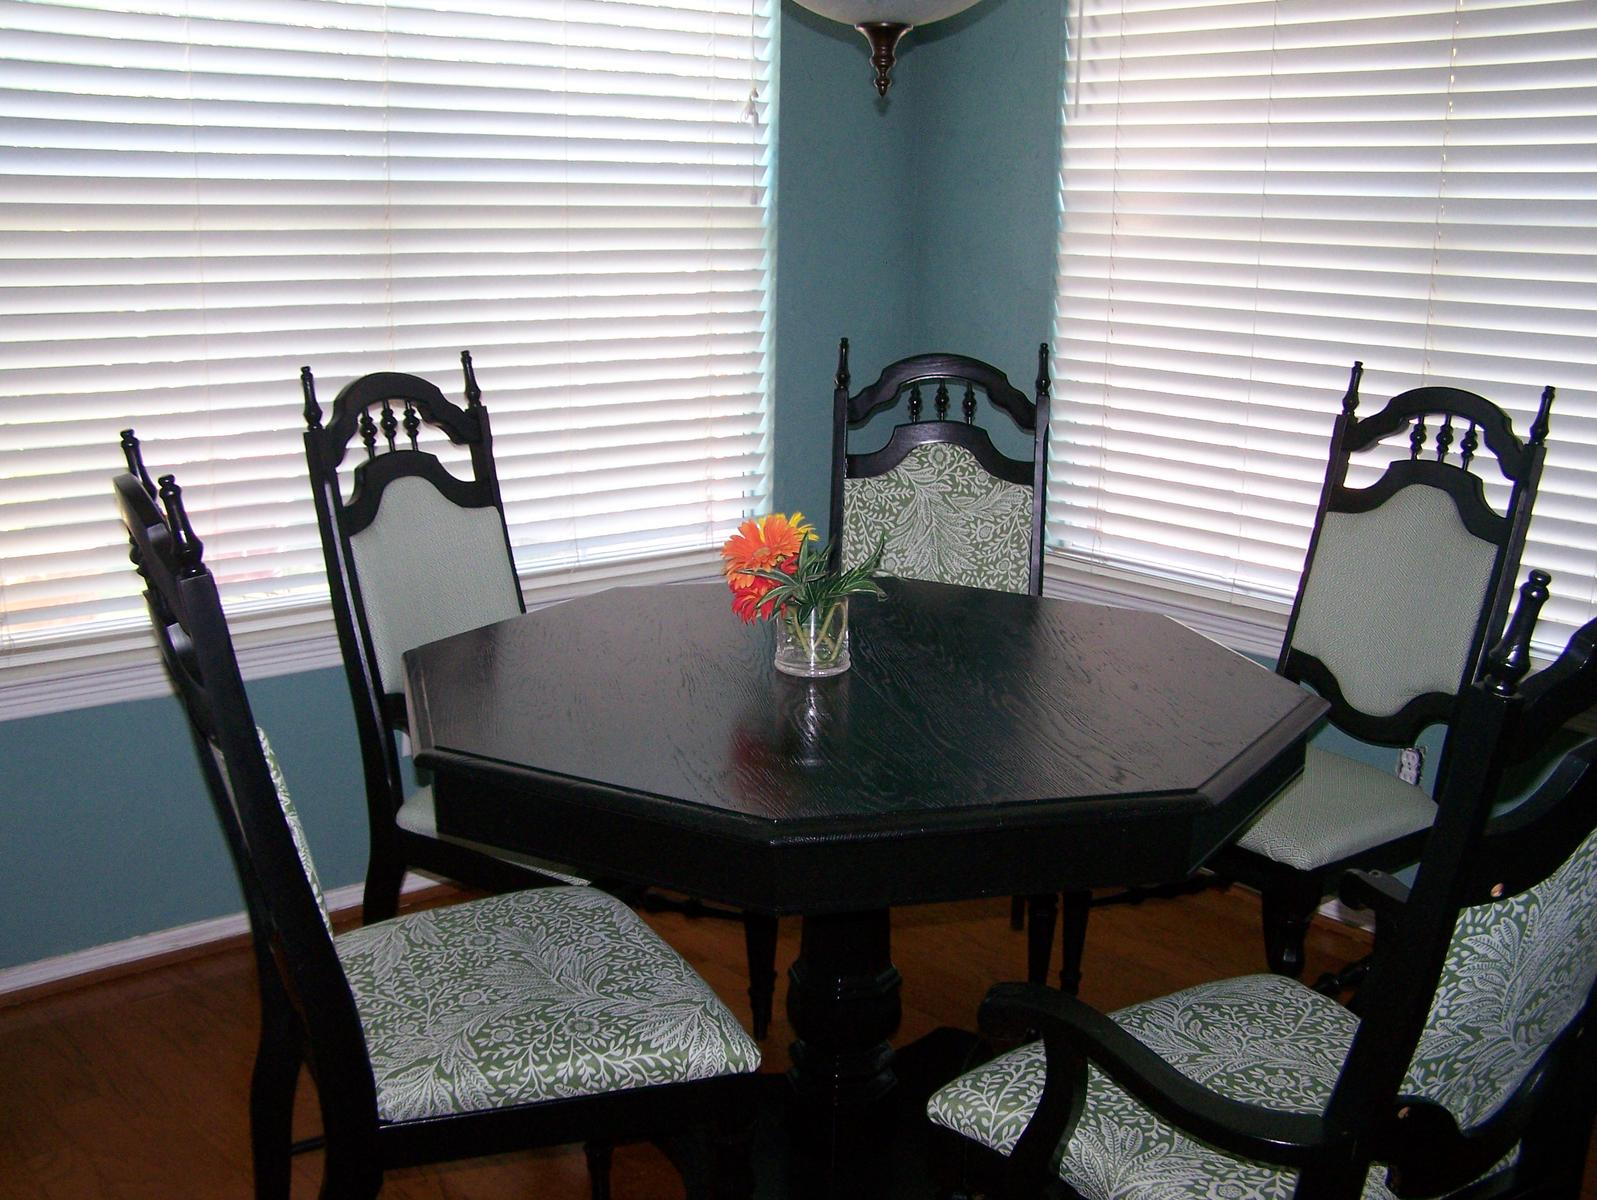 Ideas to re cover my kitchen chairs refinish colors cost antique house remodeling - Kitchen table ideas ...